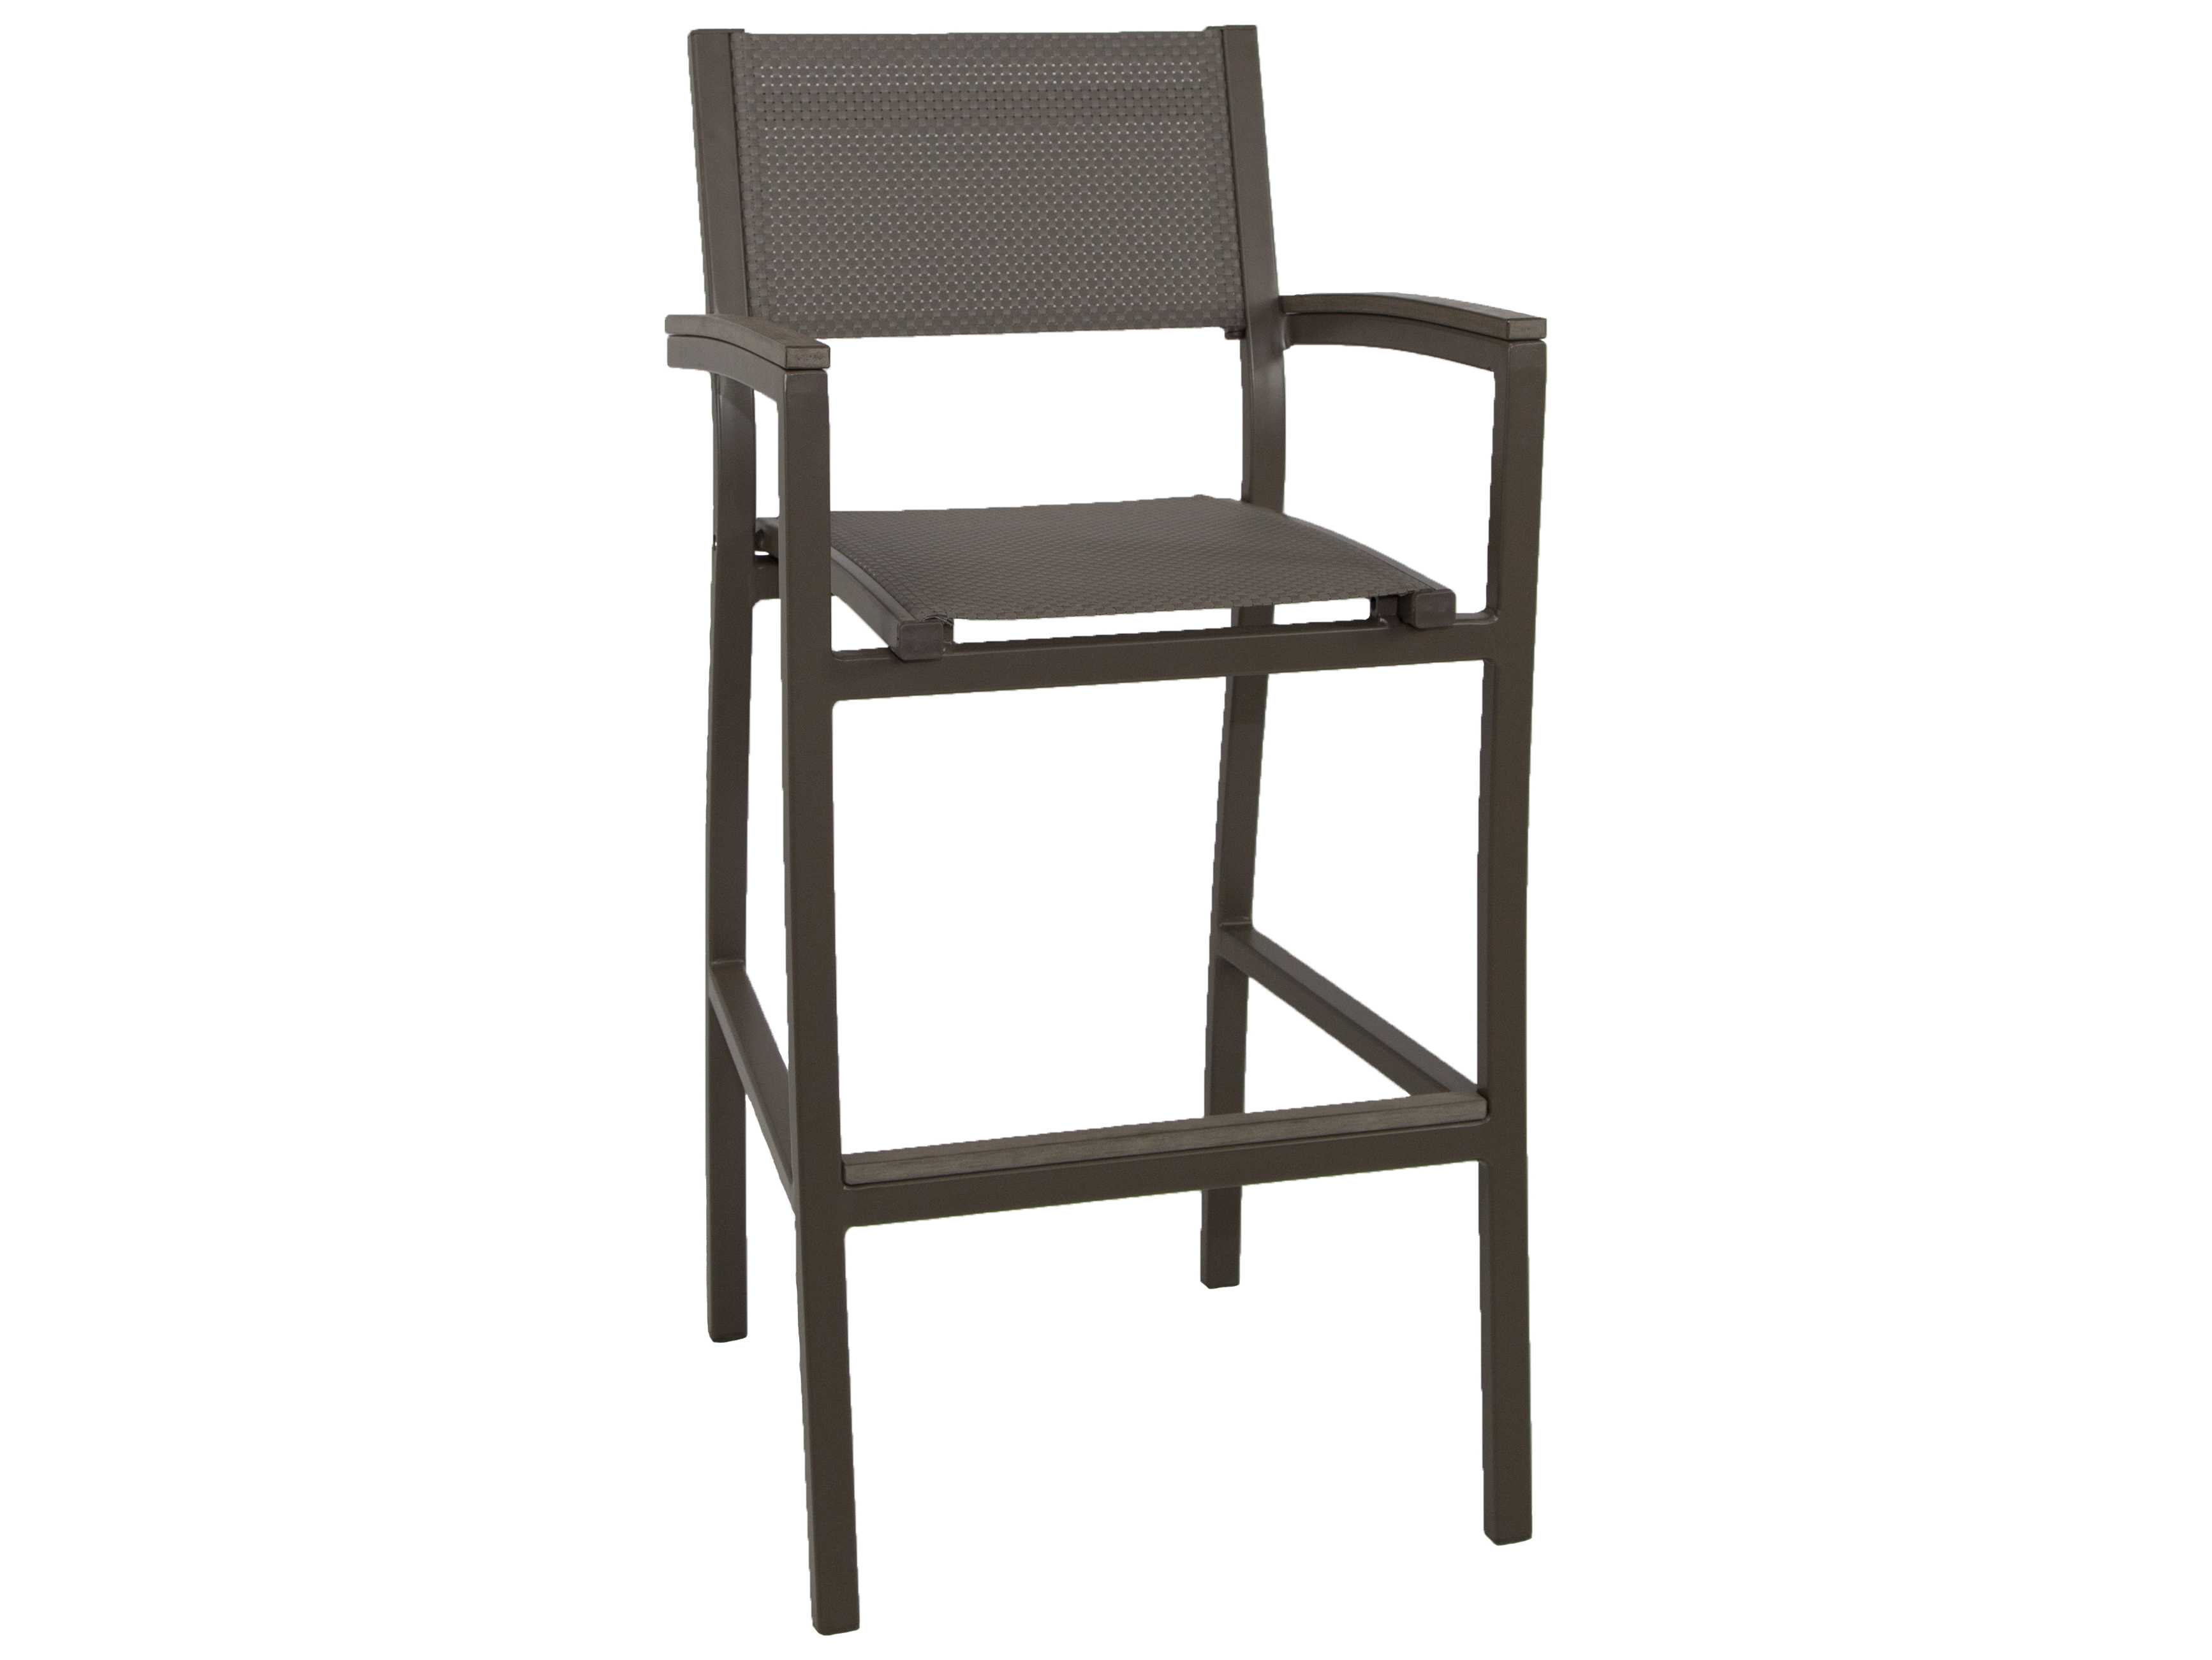 Patio heaven riviera aluminum bar chair with arms